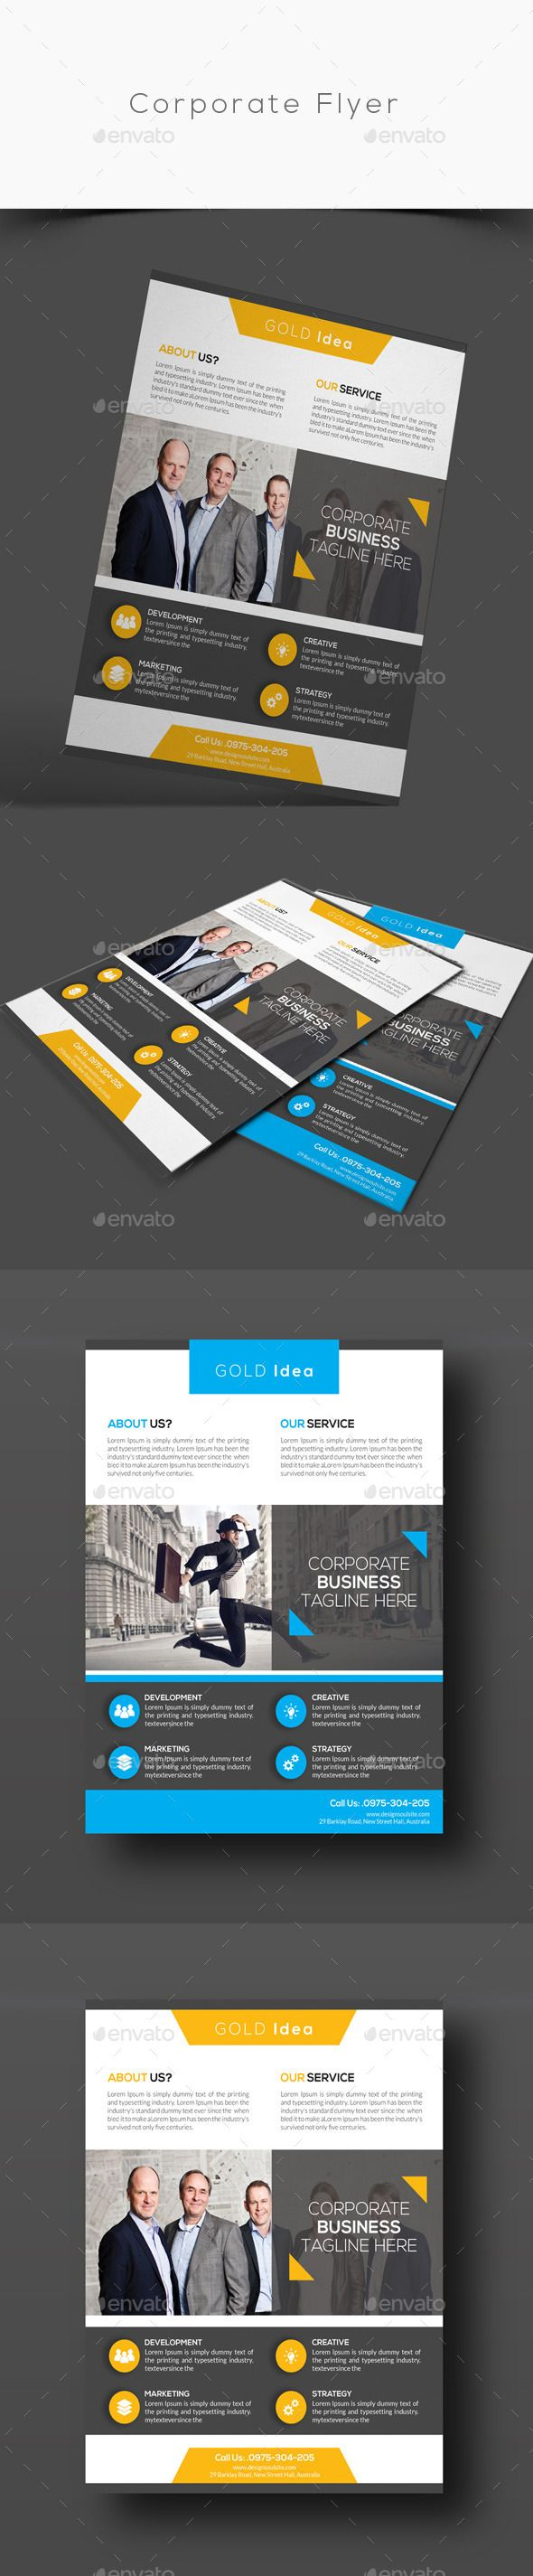 Corporate Flyer Template #design Download: http://graphicriver.net/item/corporate-flyer/12605049?ref=ksioks